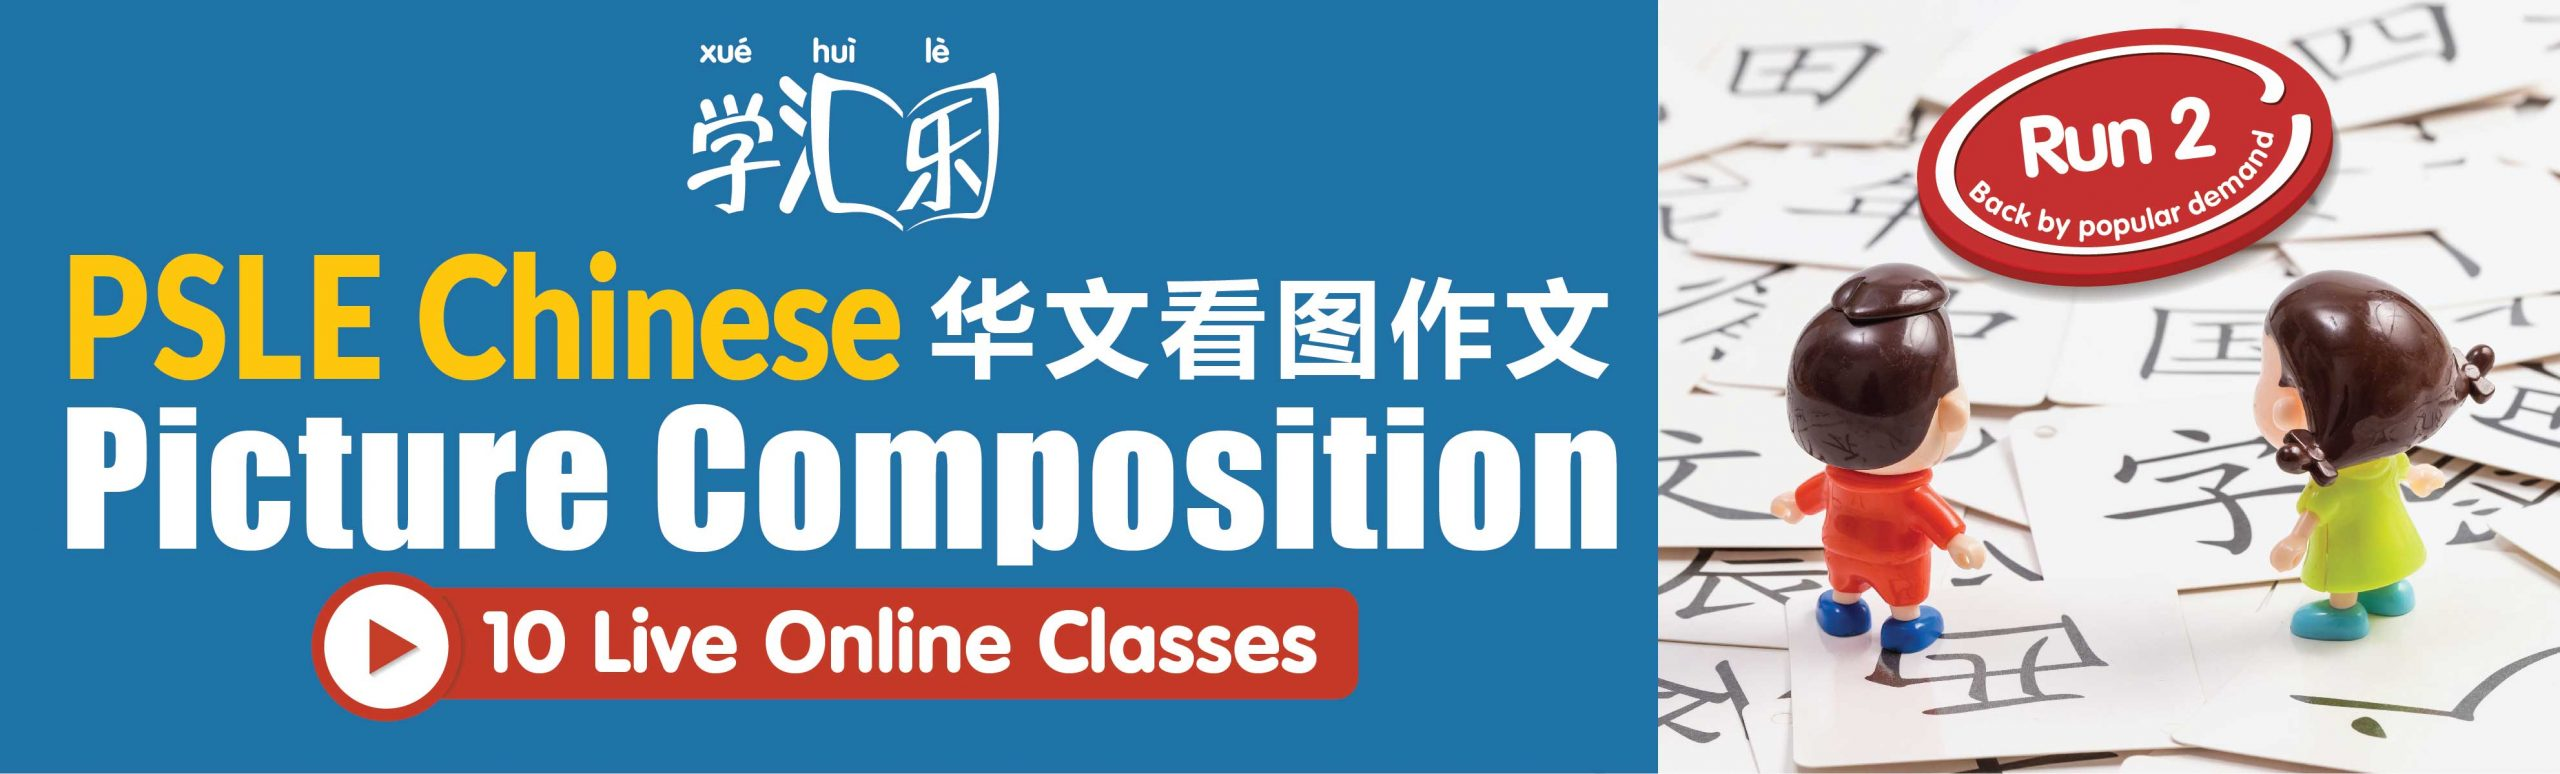 Mind Stretcher PSLE Chinese Picture Composition